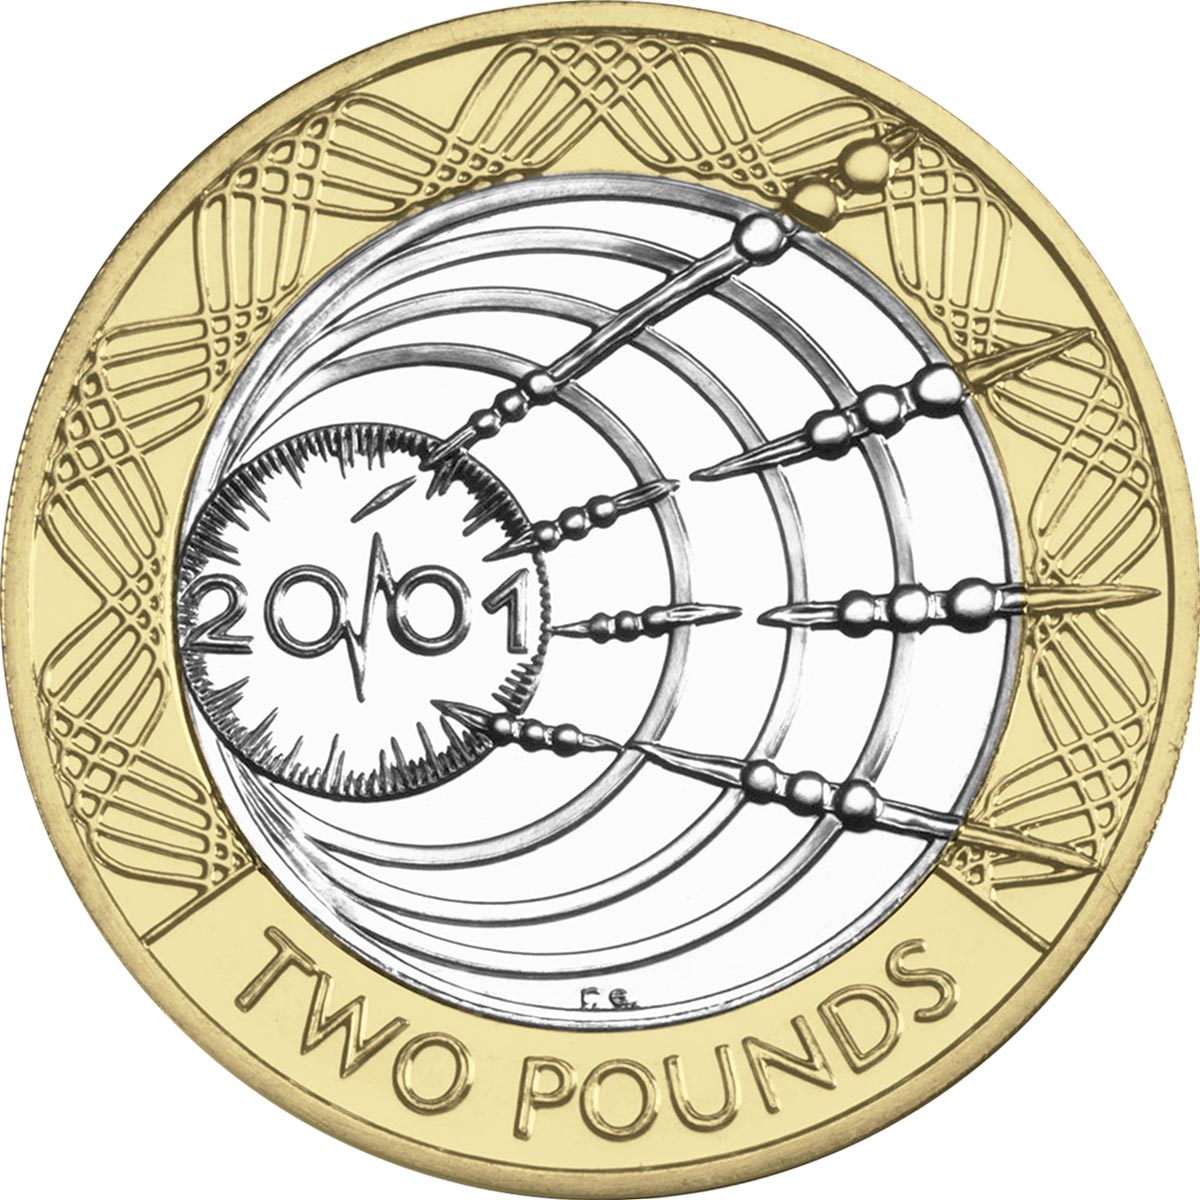 Image of 2 pounds coin - Transatlantic radio centenary | United Kingdom 2001.  The Bimetal: CuNi, nordic gold coin is of Proof, BU, UNC quality.